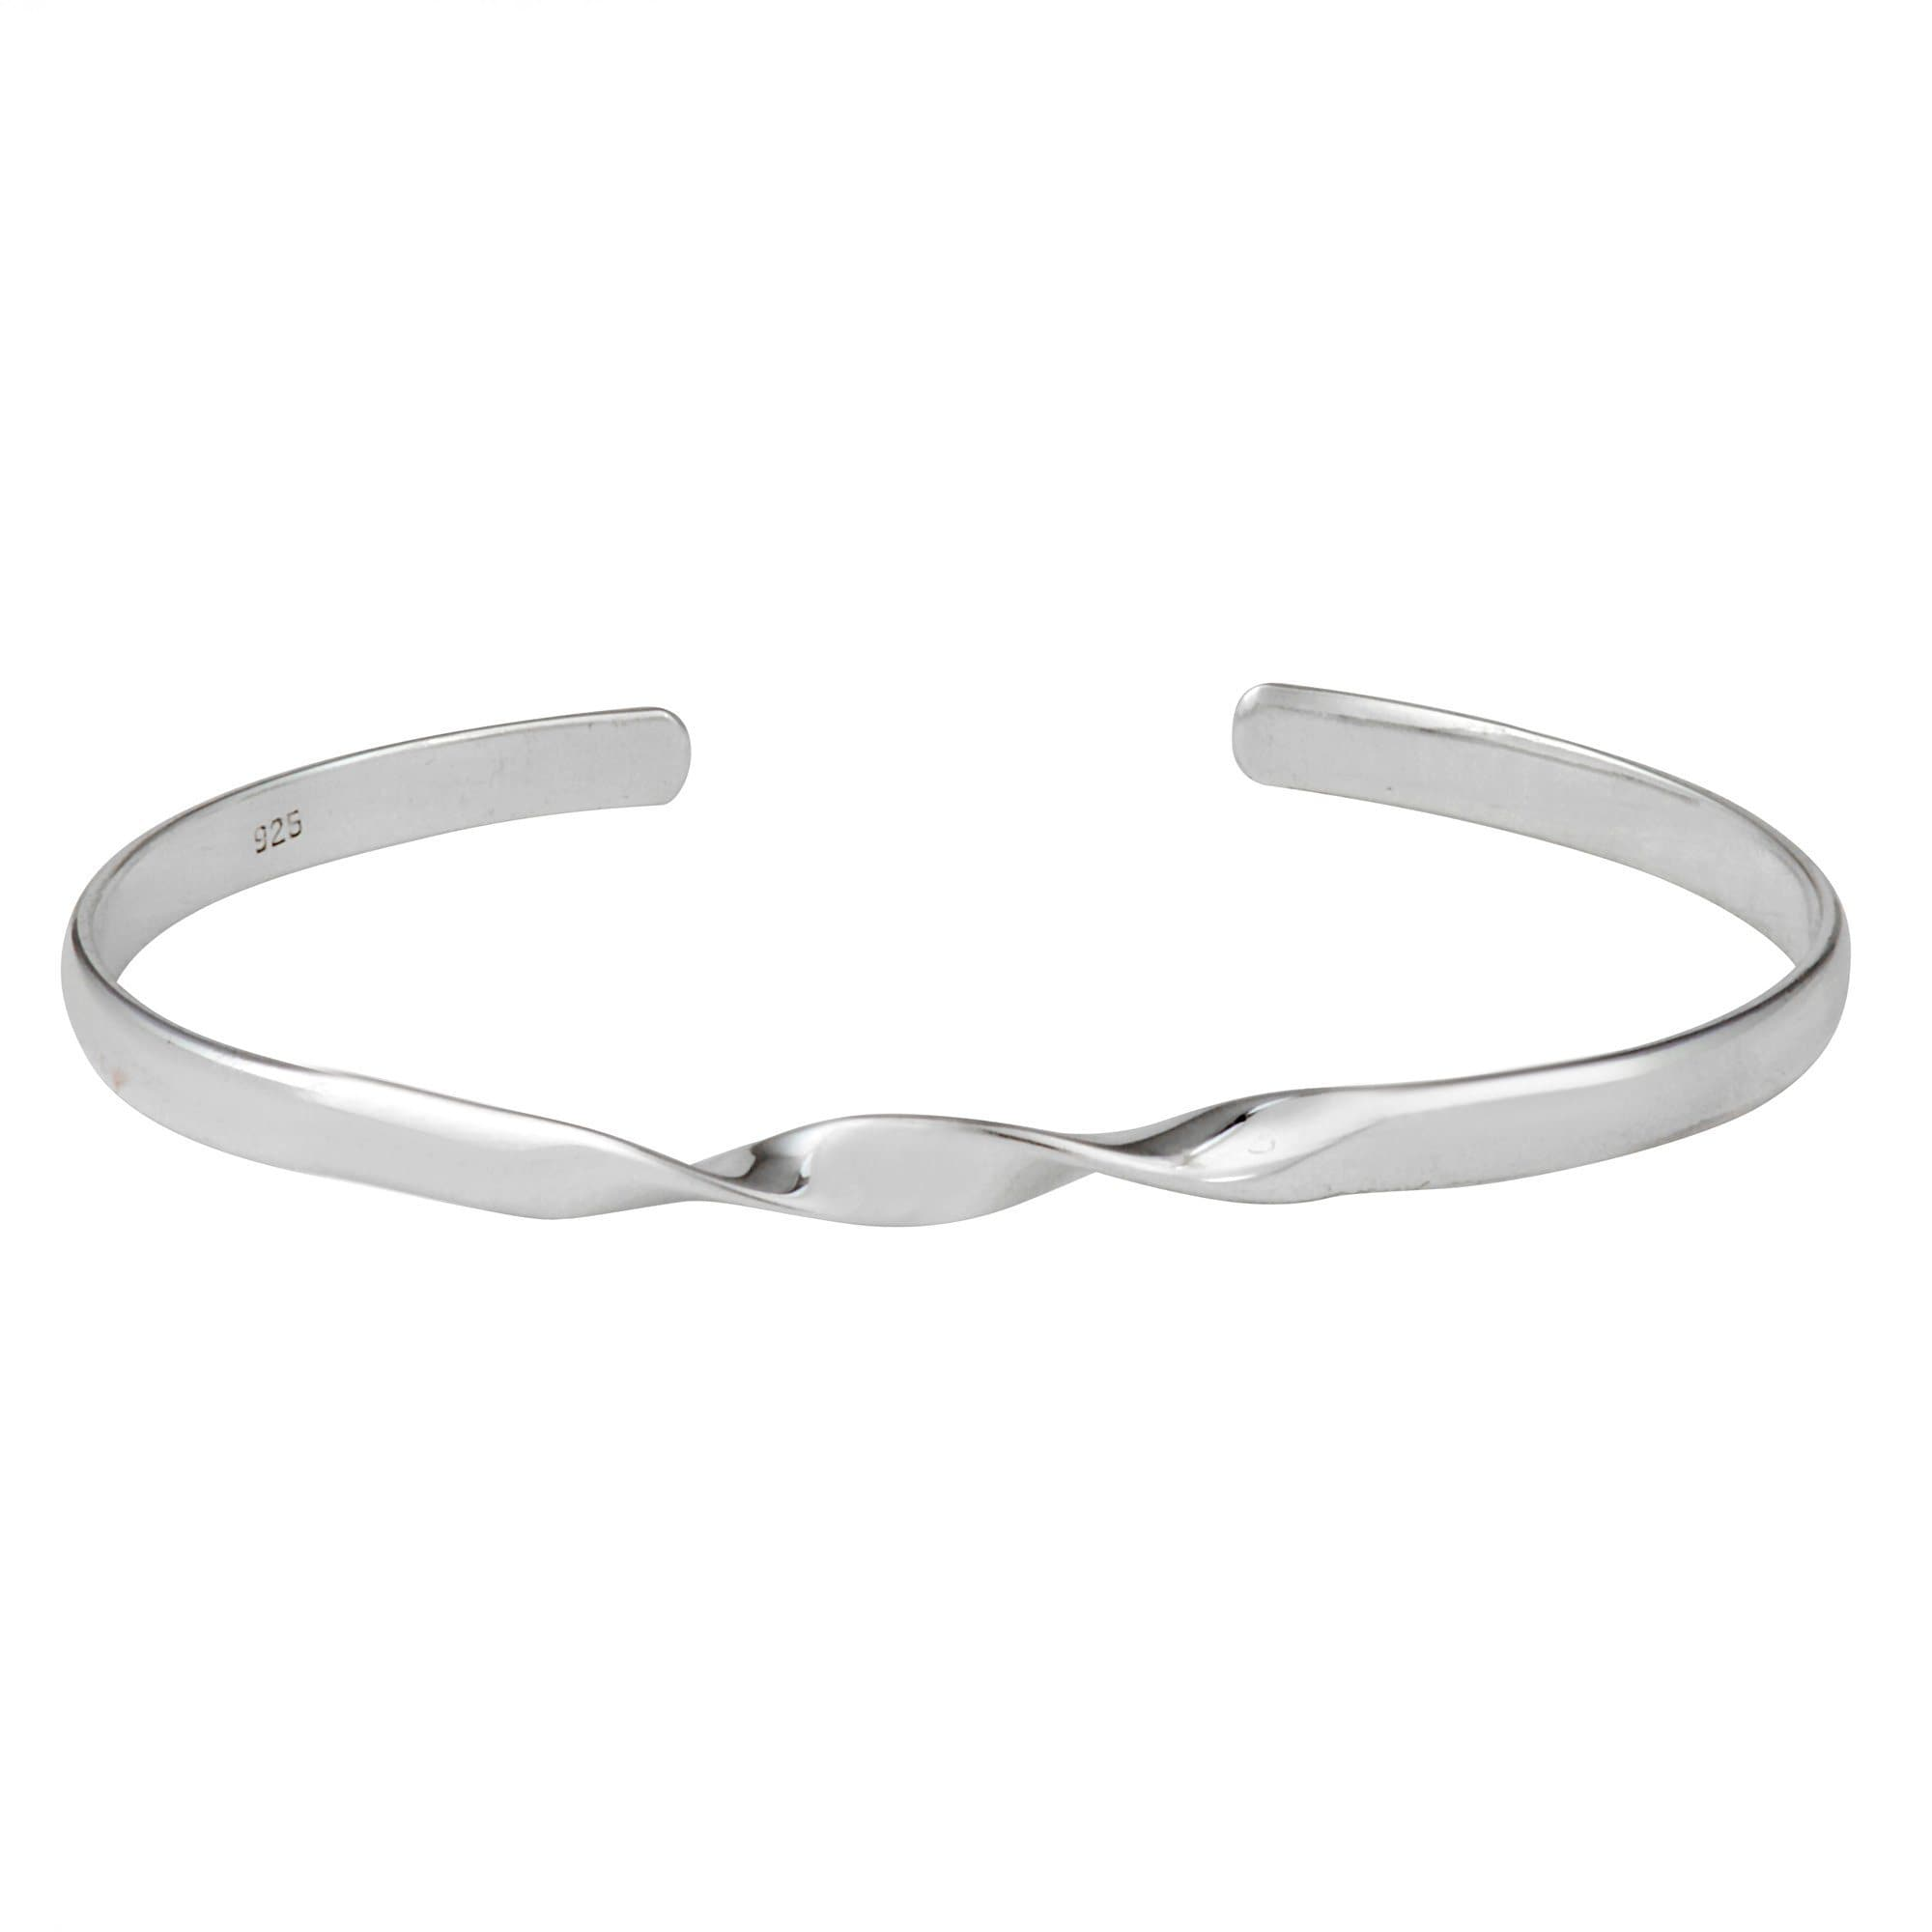 silver adjustable karen free bracelet simplicity cuff shipping handmade product bangles overstock hammered watches hill tribe bangle today jewelry